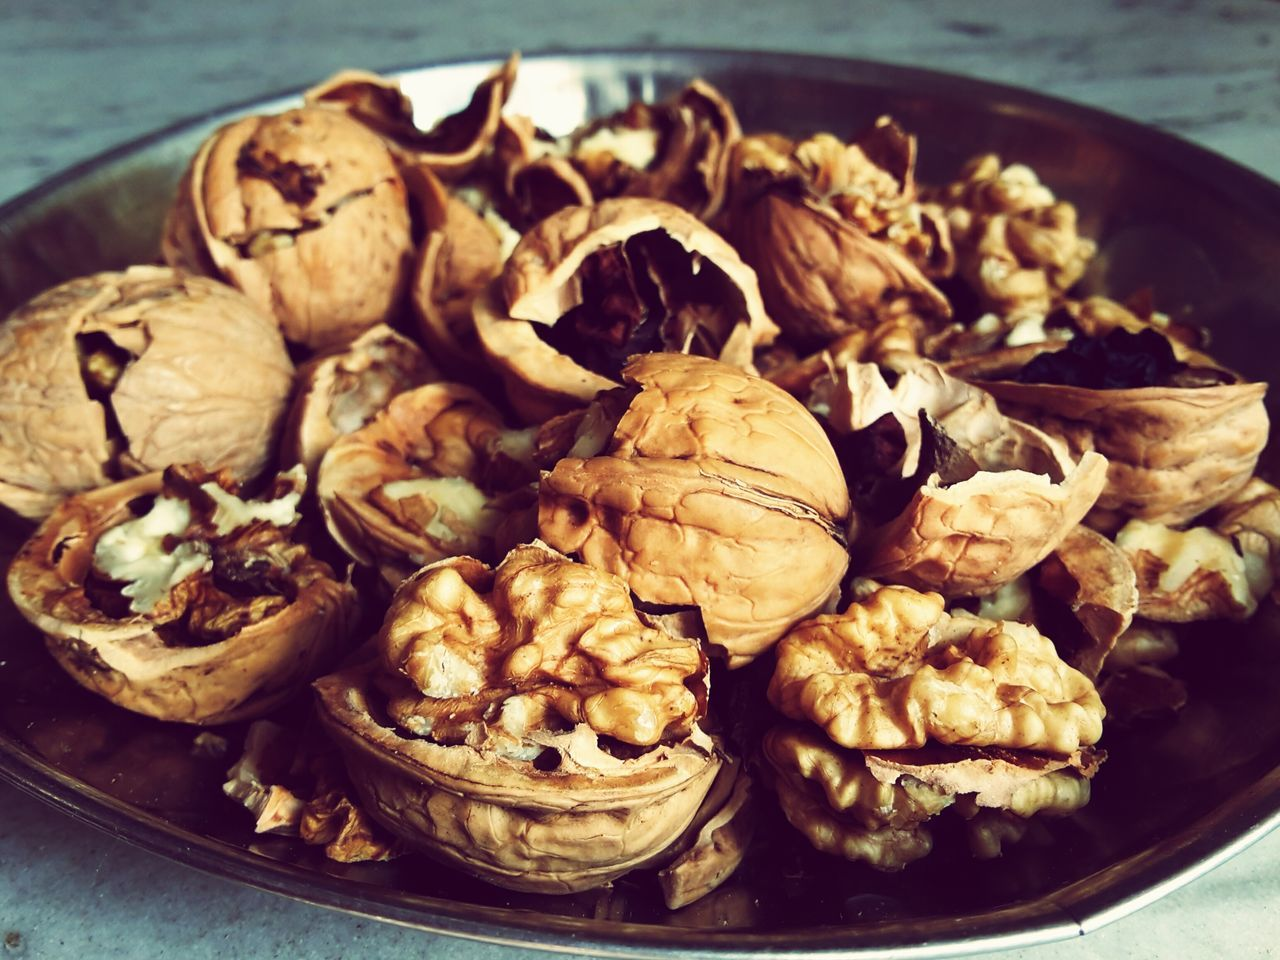 food and drink, food, no people, close-up, bowl, healthy eating, indoors, nut - food, nutshell, plate, freshness, day, ready-to-eat